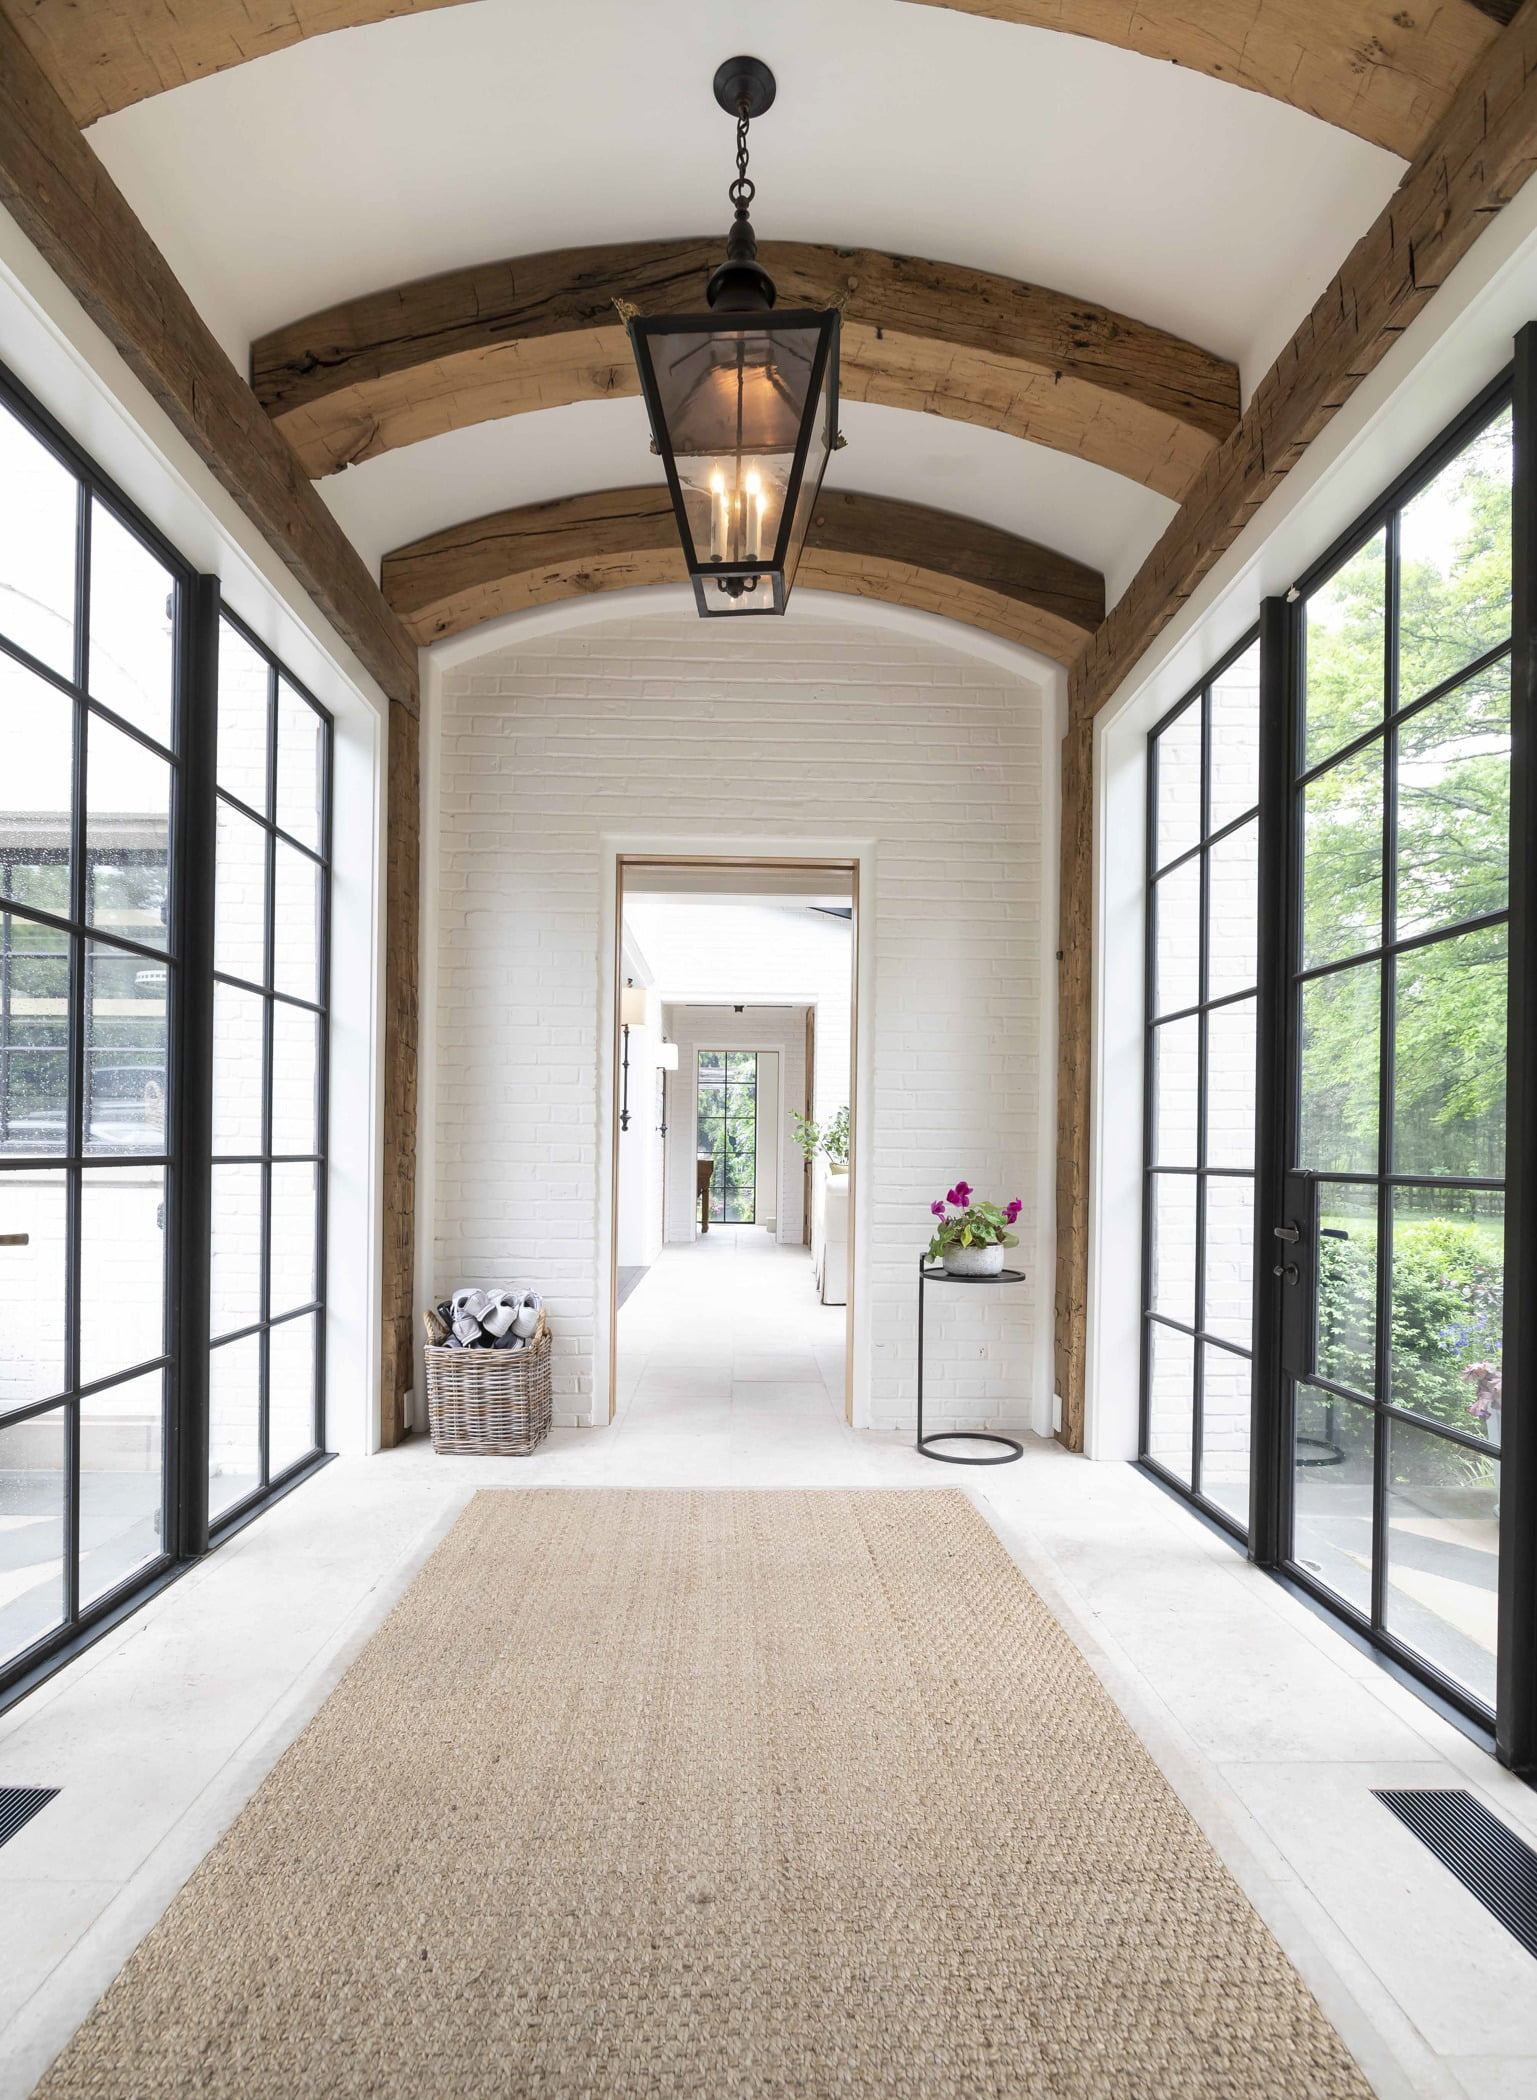 Contemporary/modern hallway with thick wooden ceiling arches, white tile flooring, and black steel framed doors and windows on either side (3)